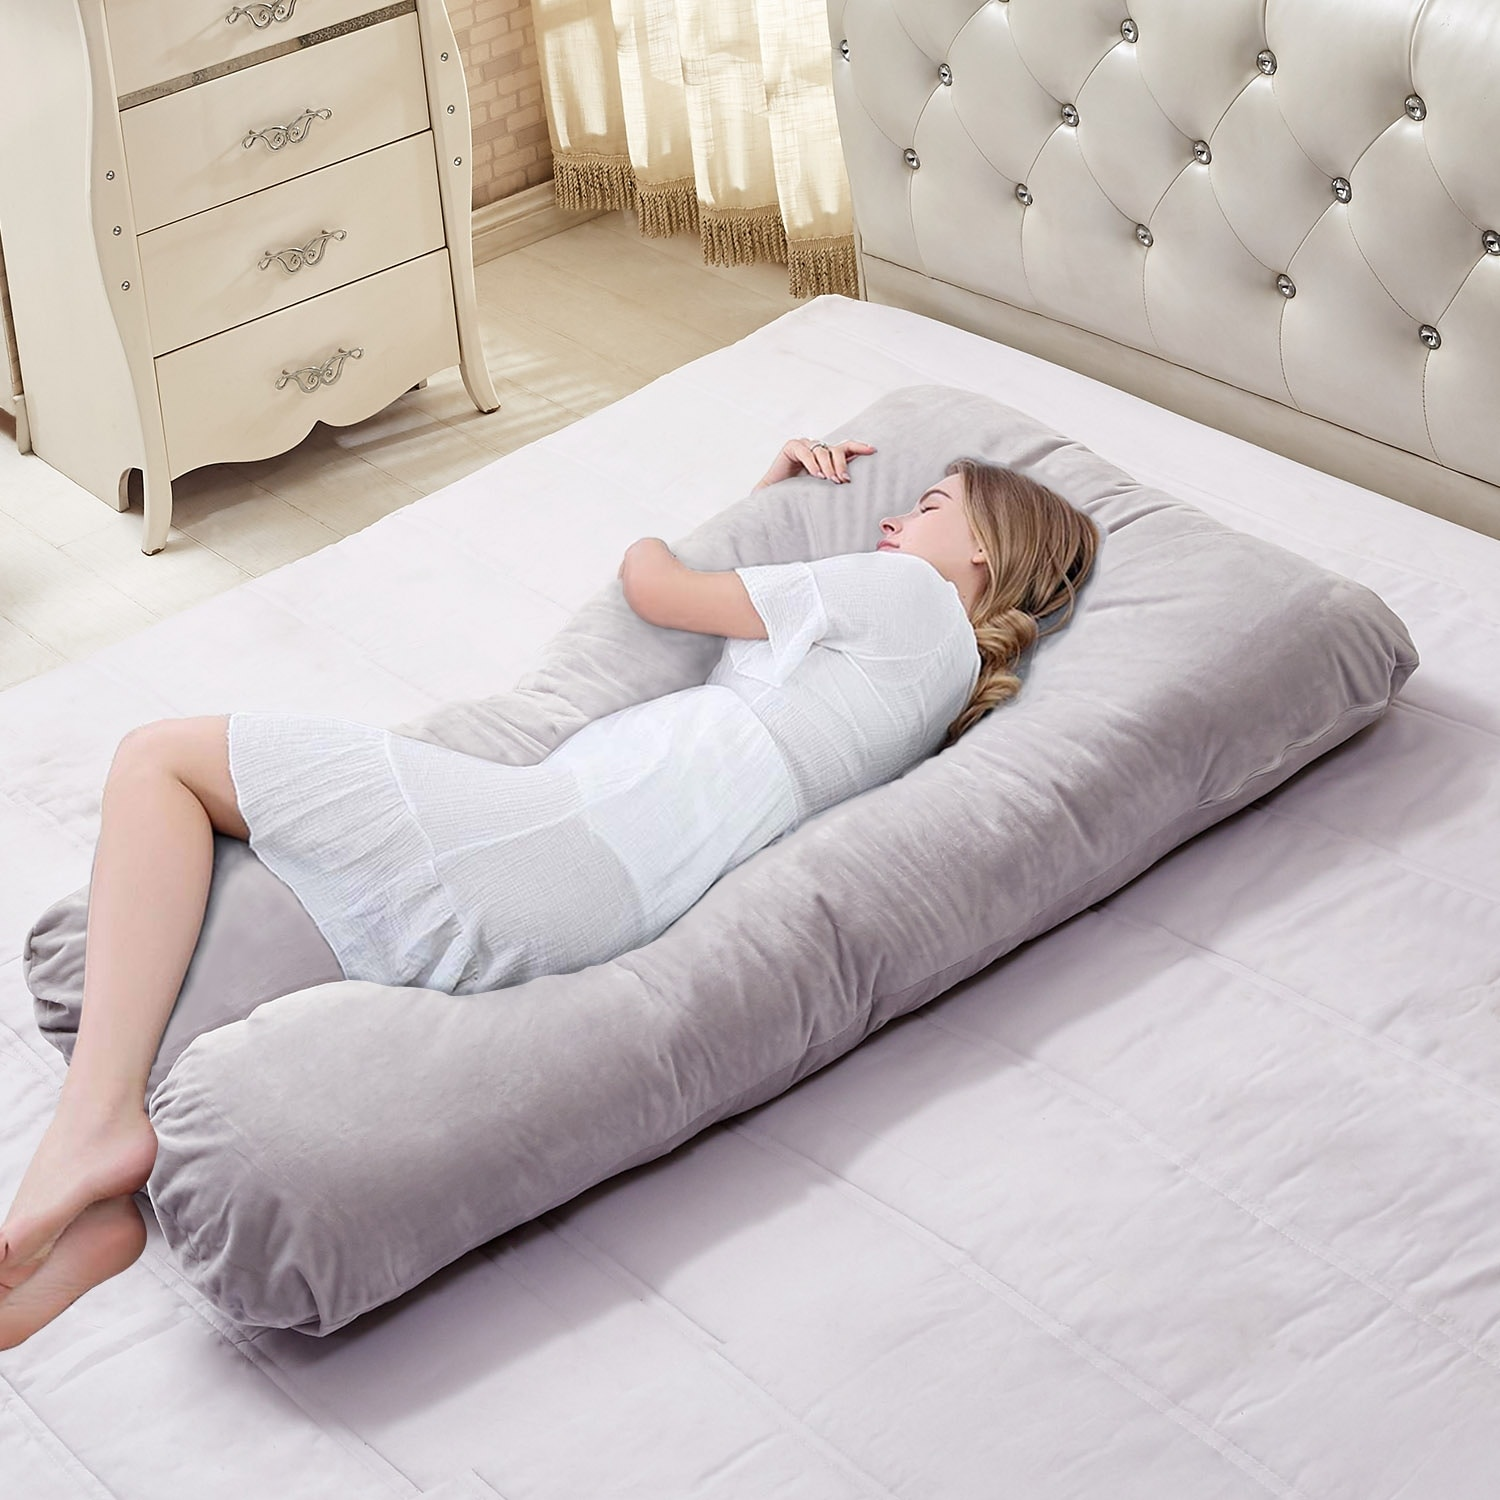 White Bolster Pillow//Maternity Pillow With Free Cover Full Body Support